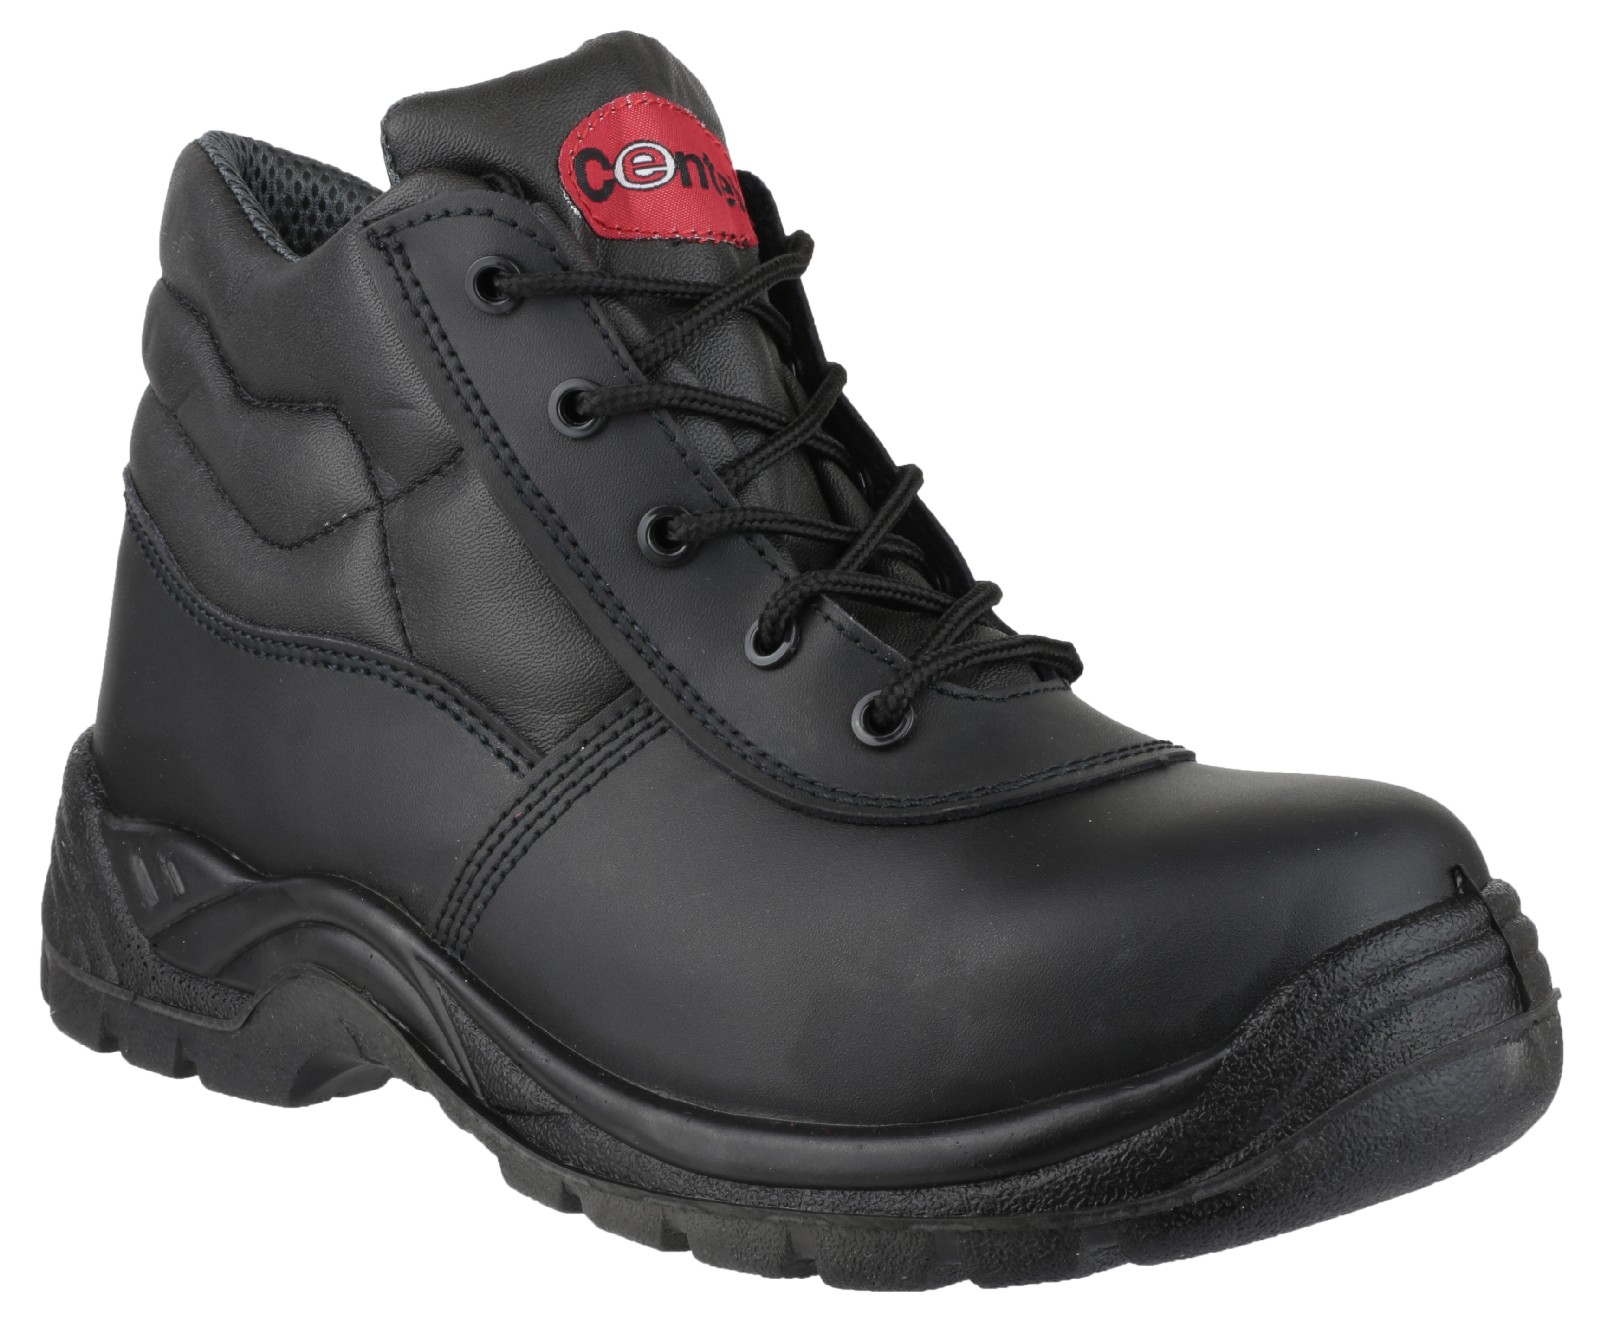 FS30 Safety Boots